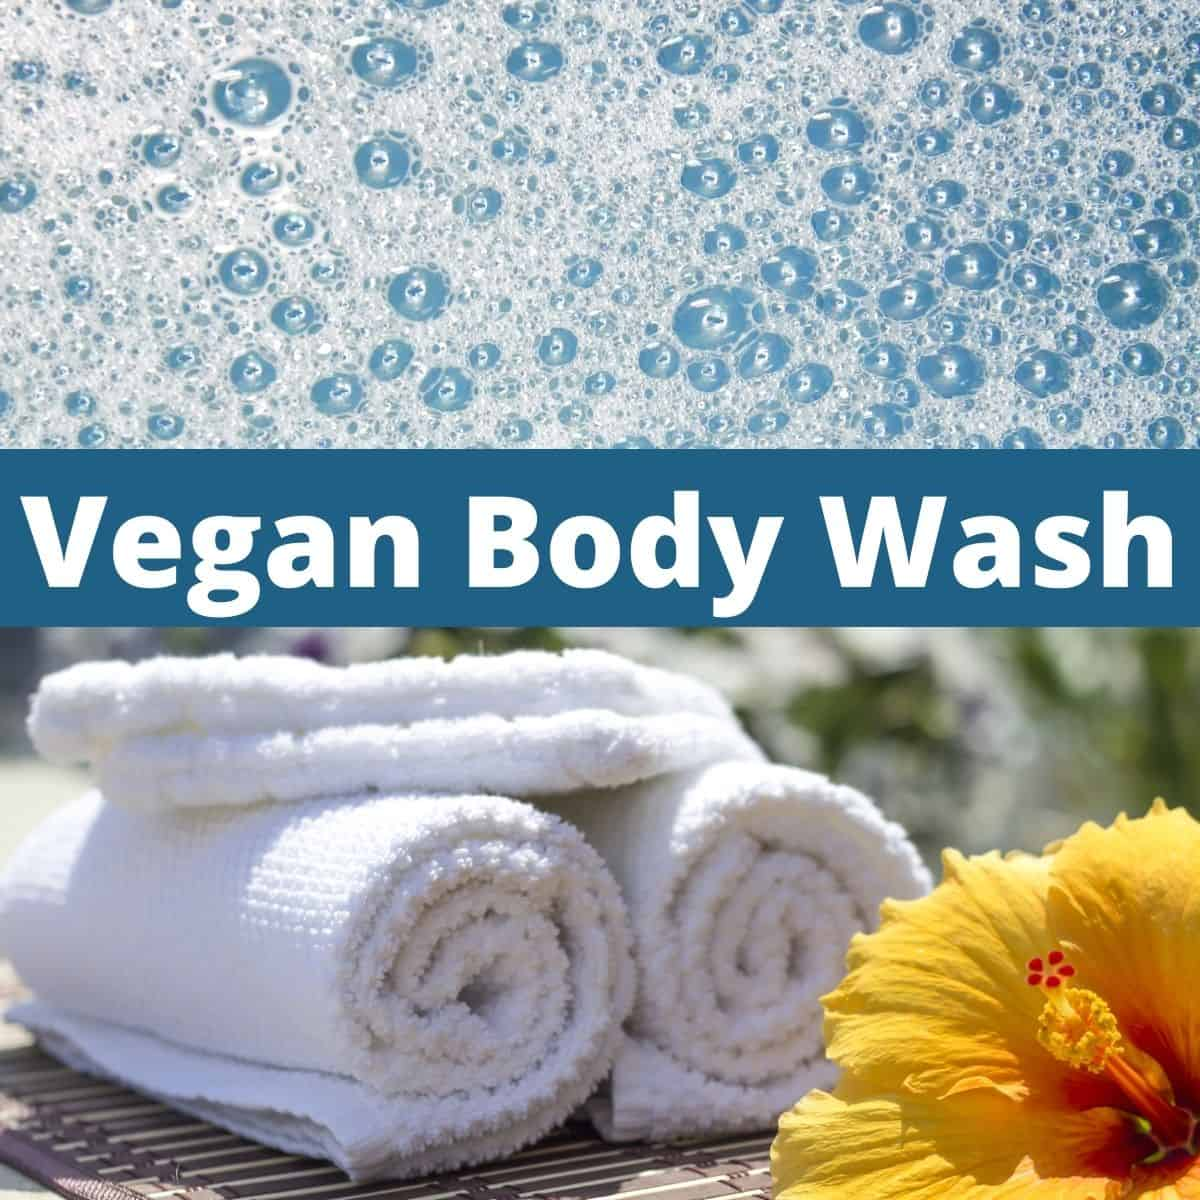 """Soap bubbles and folded towels with text that says, """"Vegan Body Wash."""""""